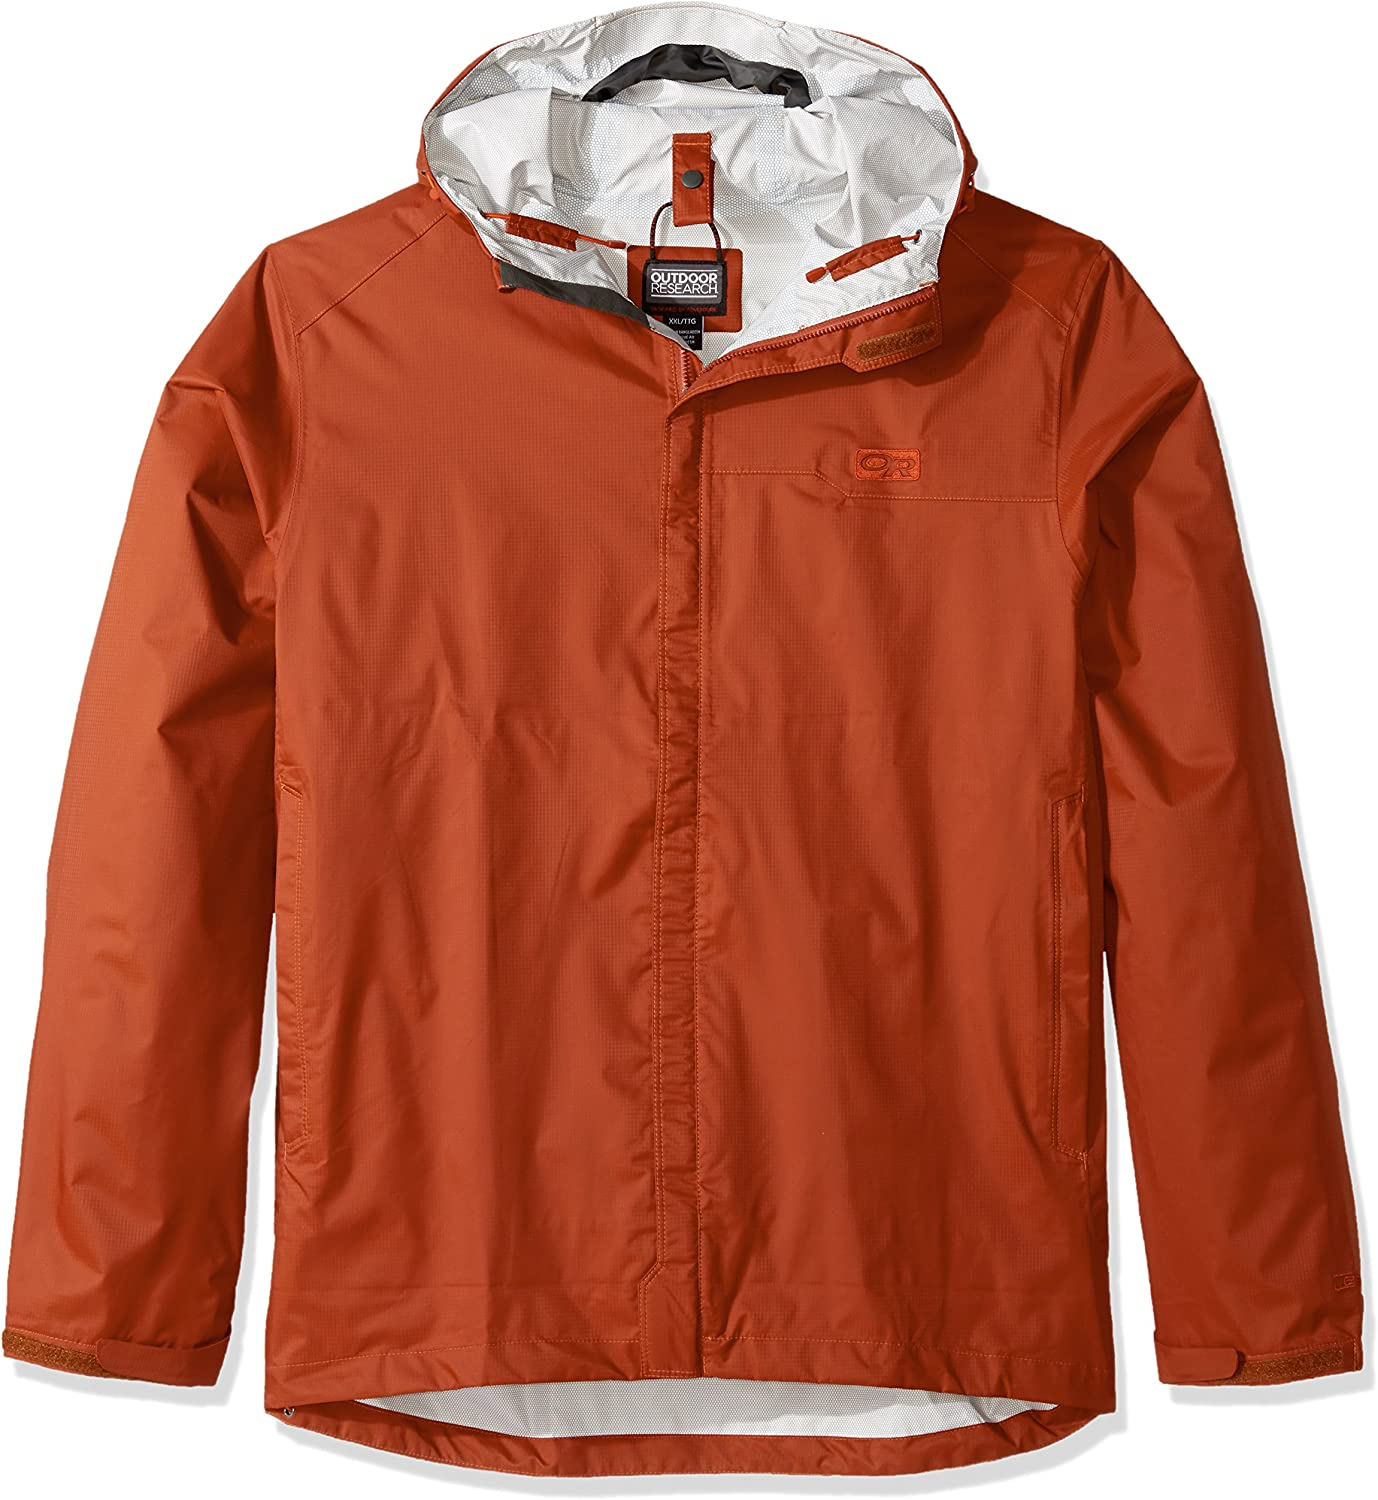 Outdoor Research Men's Max 78% OFF Jacket 70% OFF Outlet Horizon